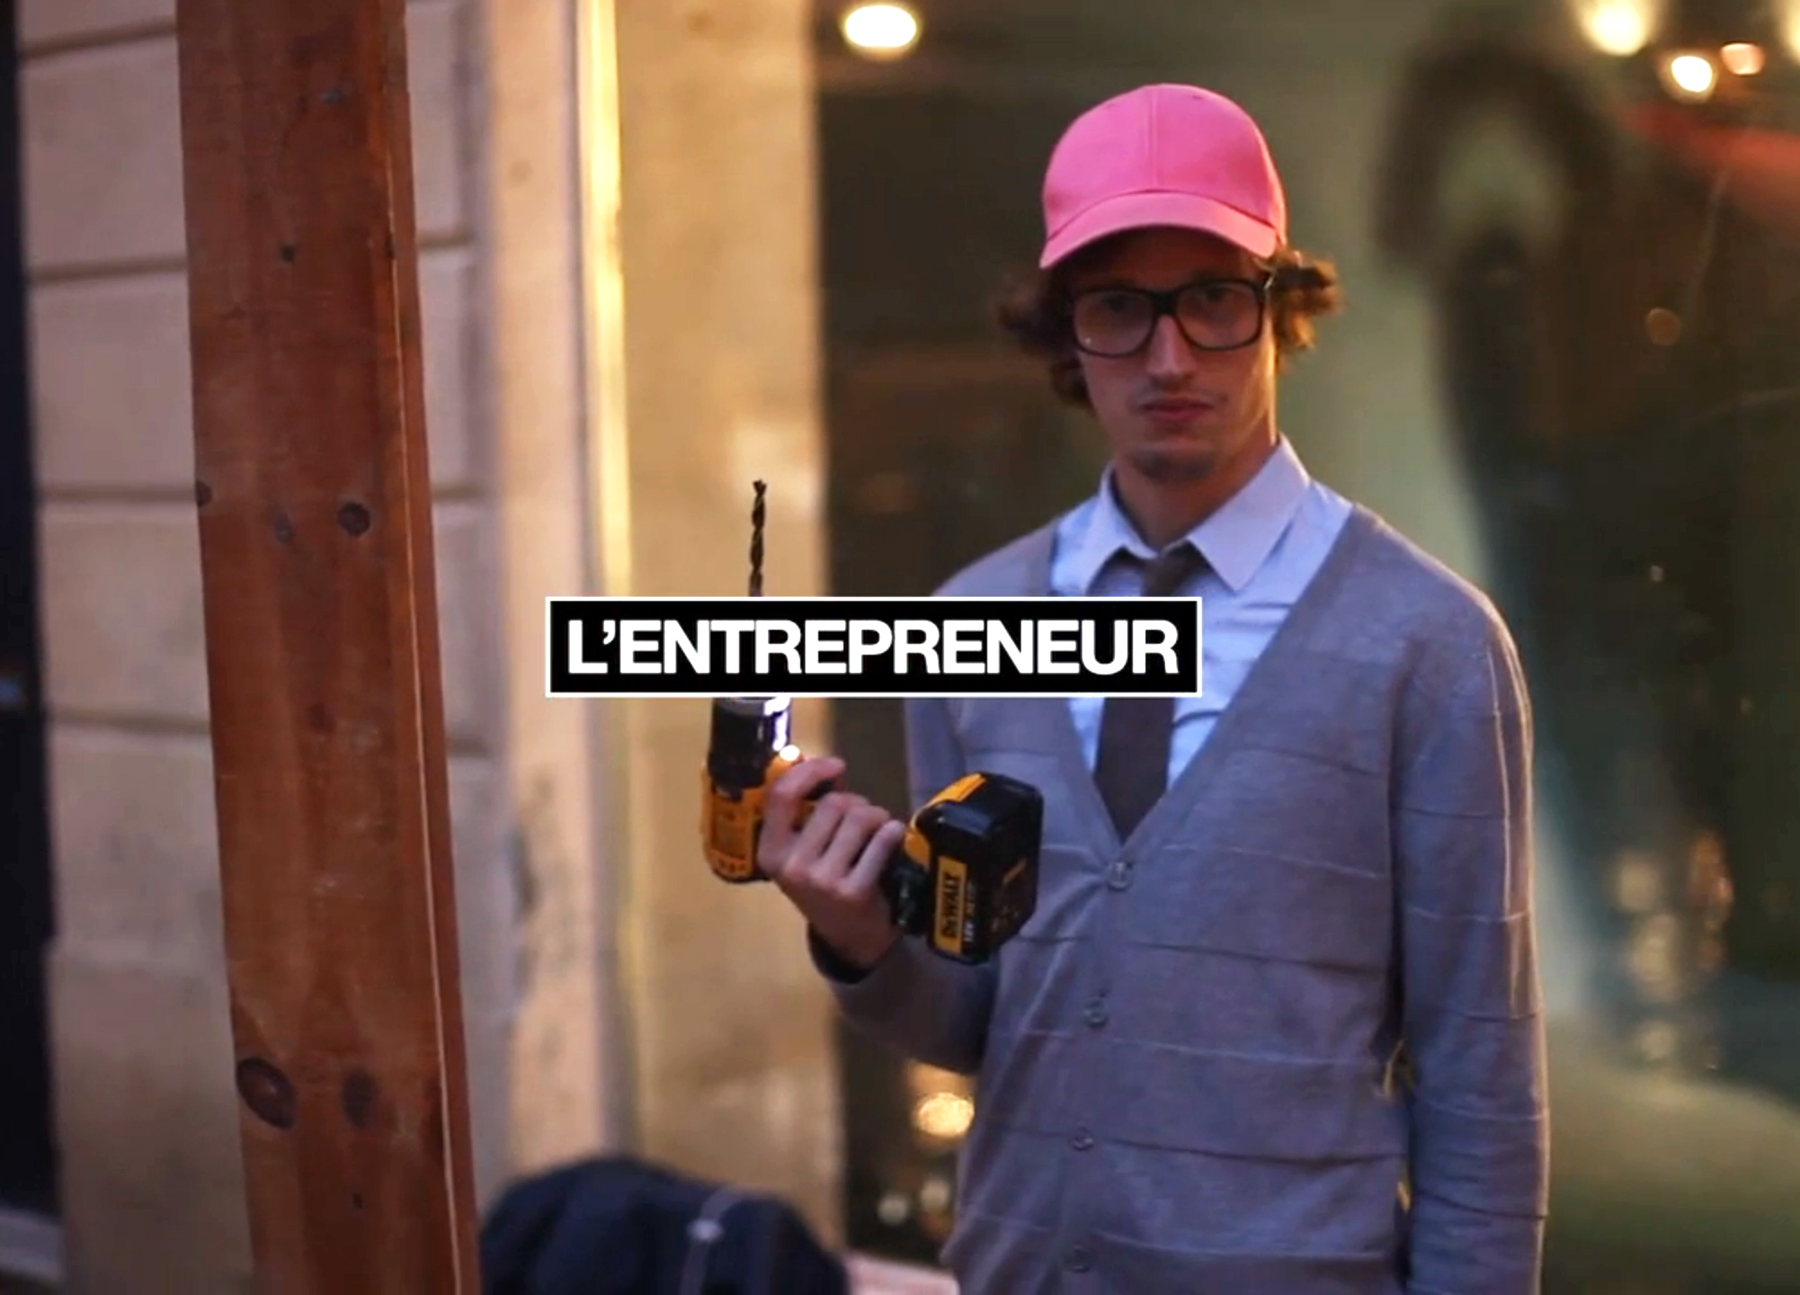 Laurent Kropf - L'entrepreneur